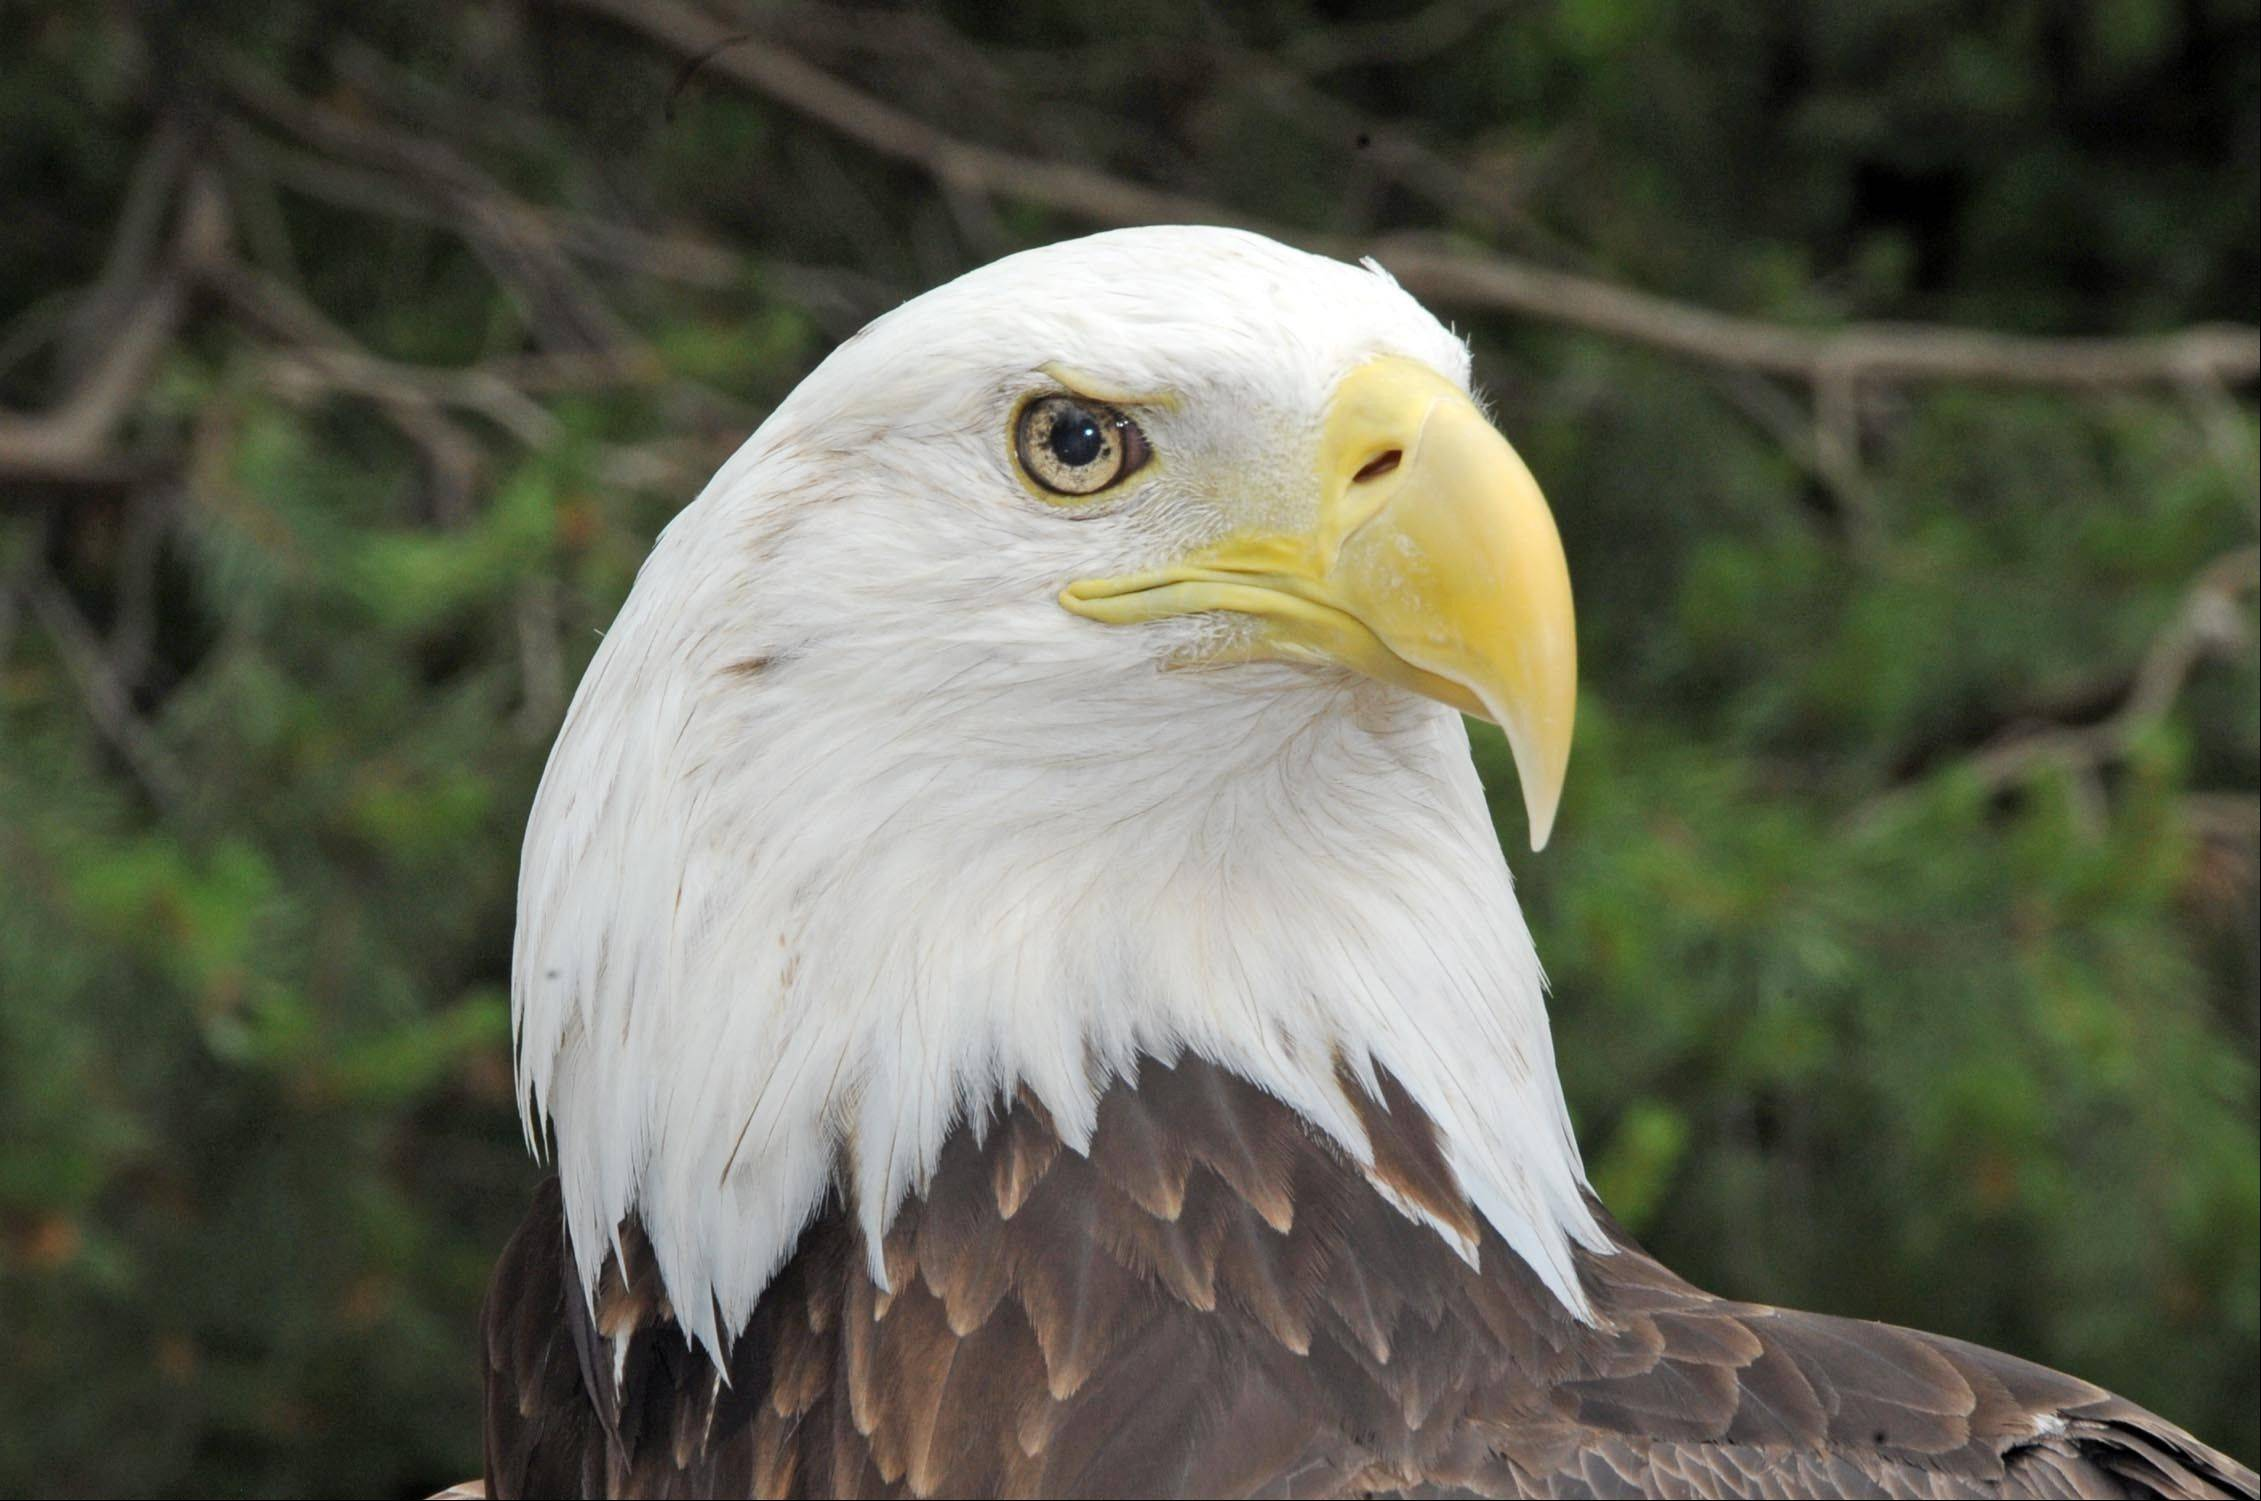 Bald eagles are increasingly common throughout our region.